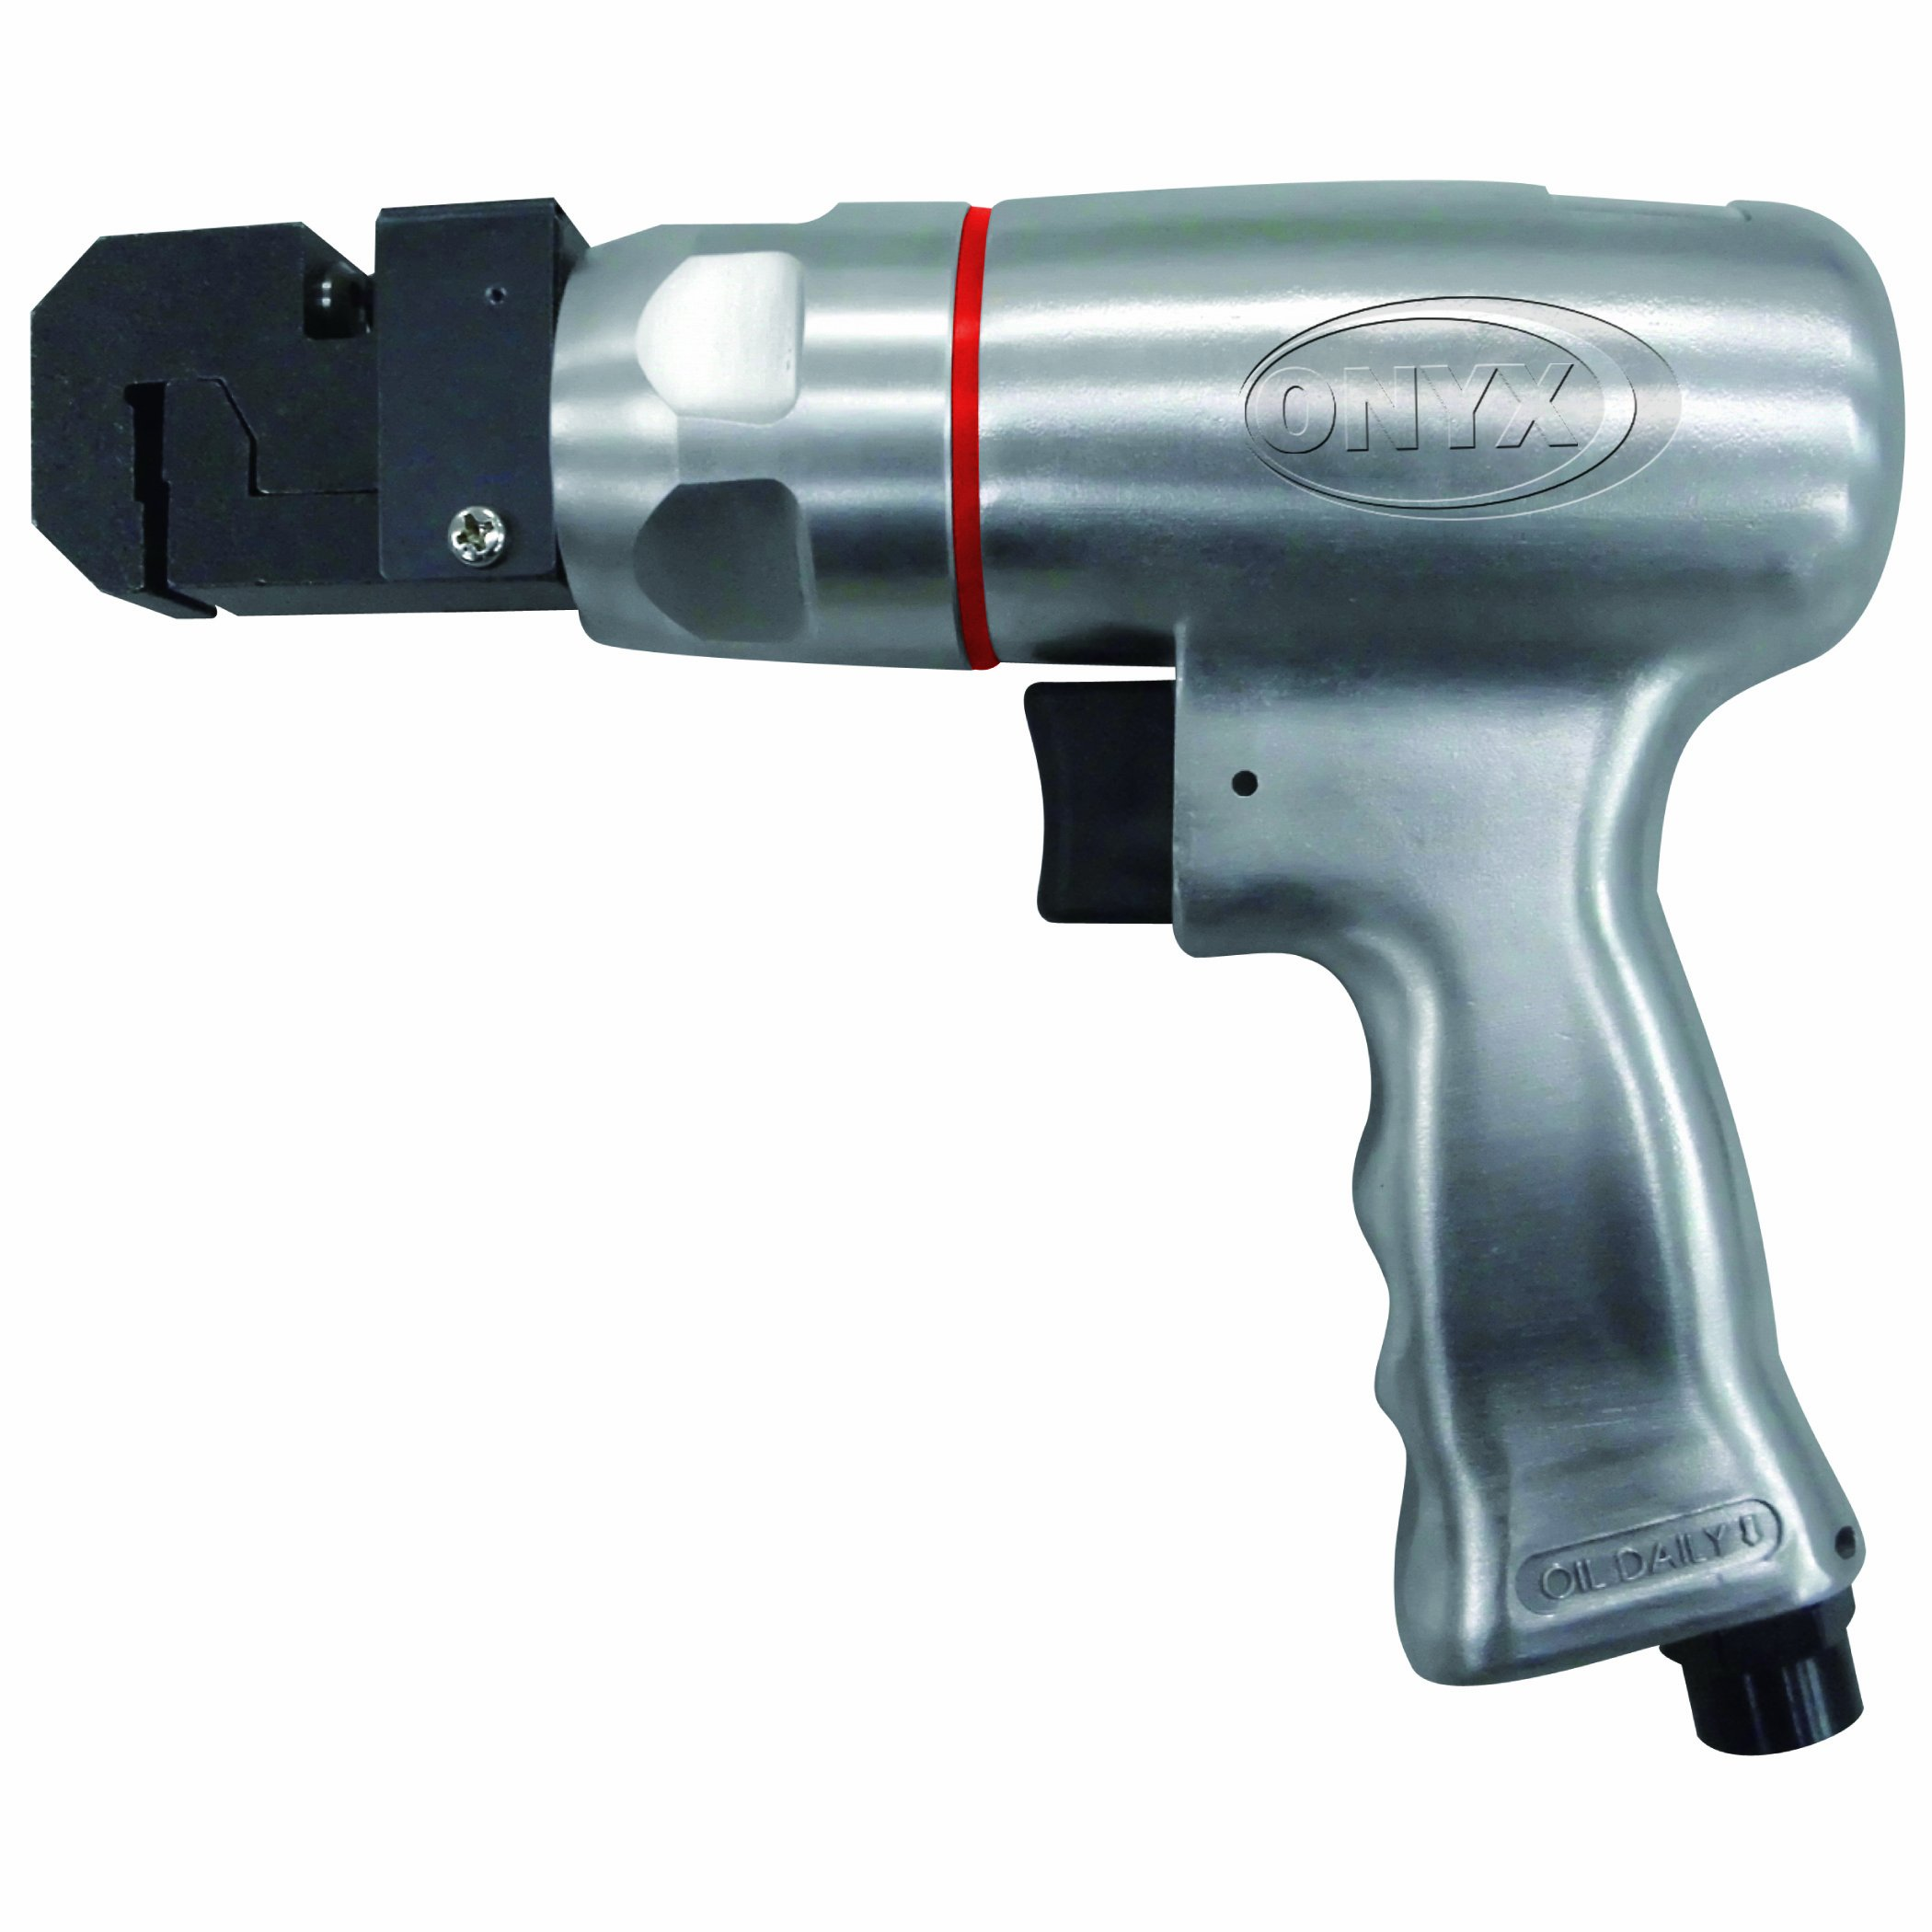 Astro 605PT ONYX Pistol Grip Punch/Flange Tool